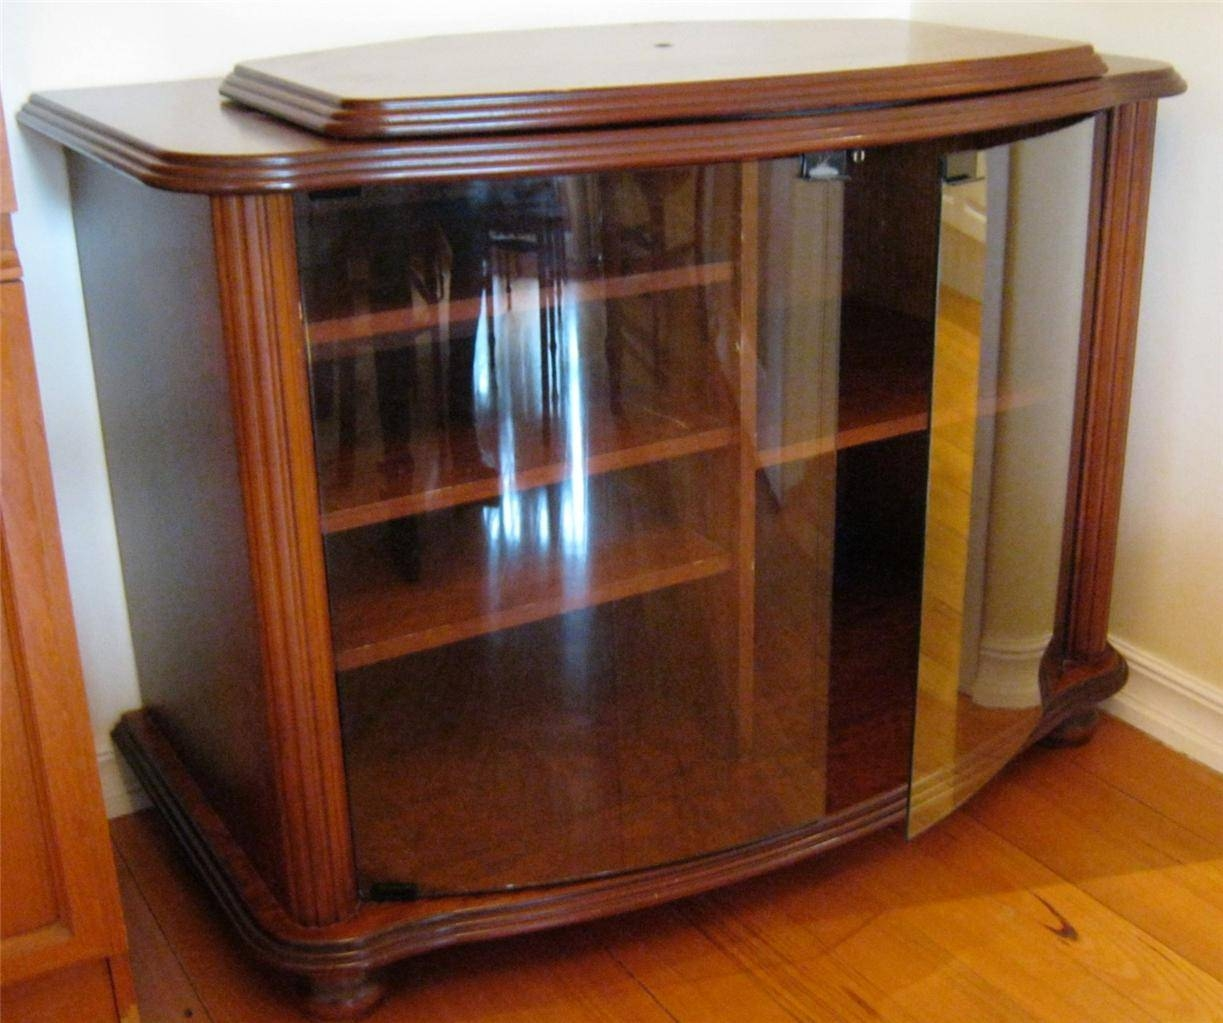 Corner Tv Stand Cabinet With Frameless Glass Doors – Decofurnish Pertaining To Corner Tv Cabinets With Glass Doors (View 3 of 15)